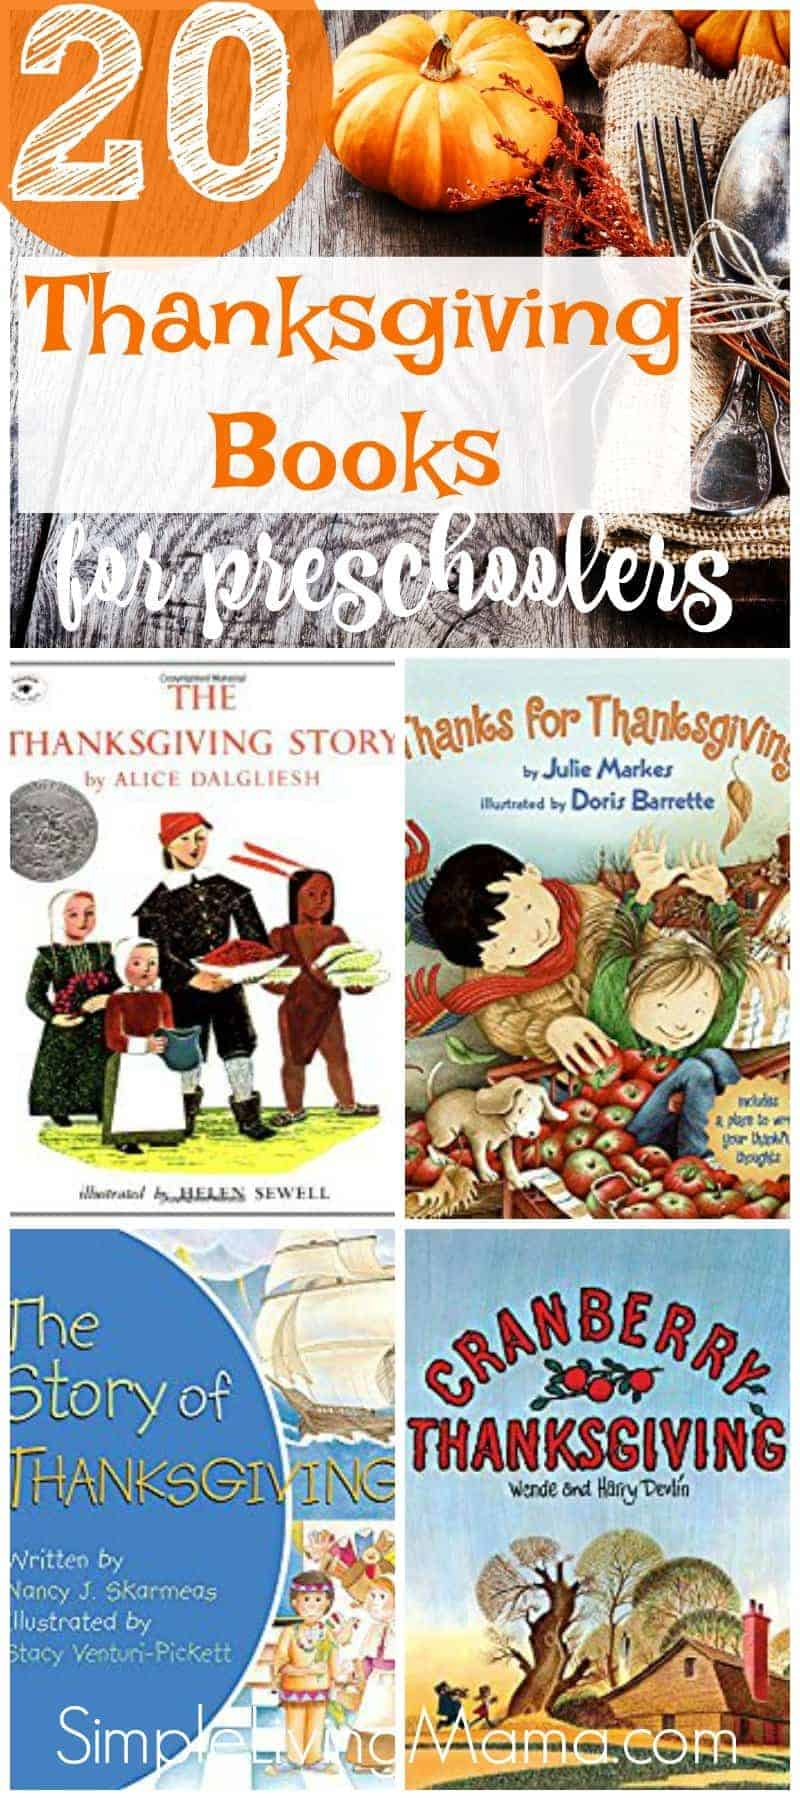 Use this Thanksgiving themed preschool book list to find a wonderful book to read to your child this Thanksgiving!